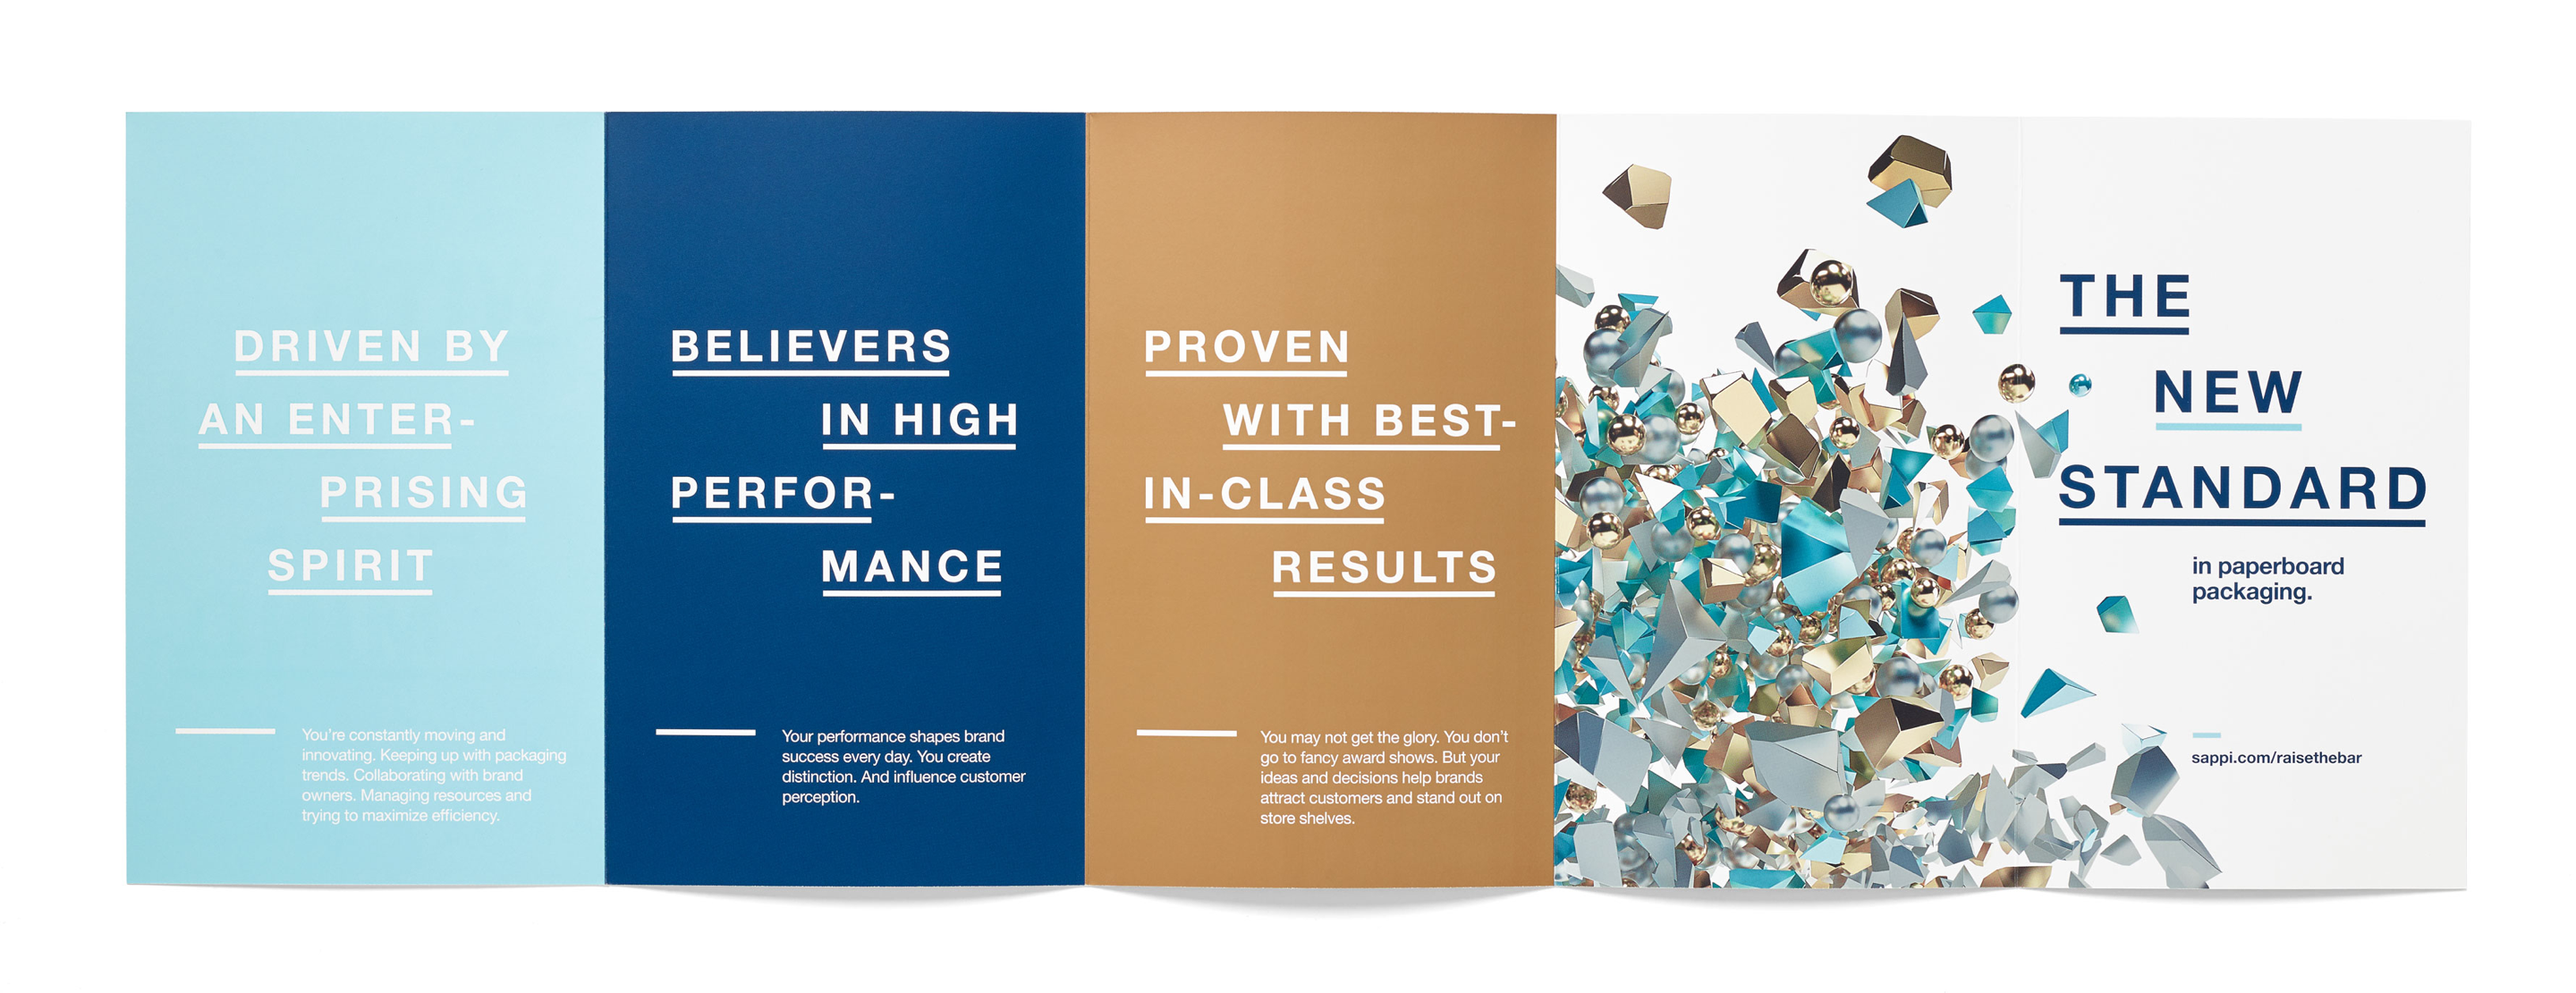 Brochure spread for Sappi packaging